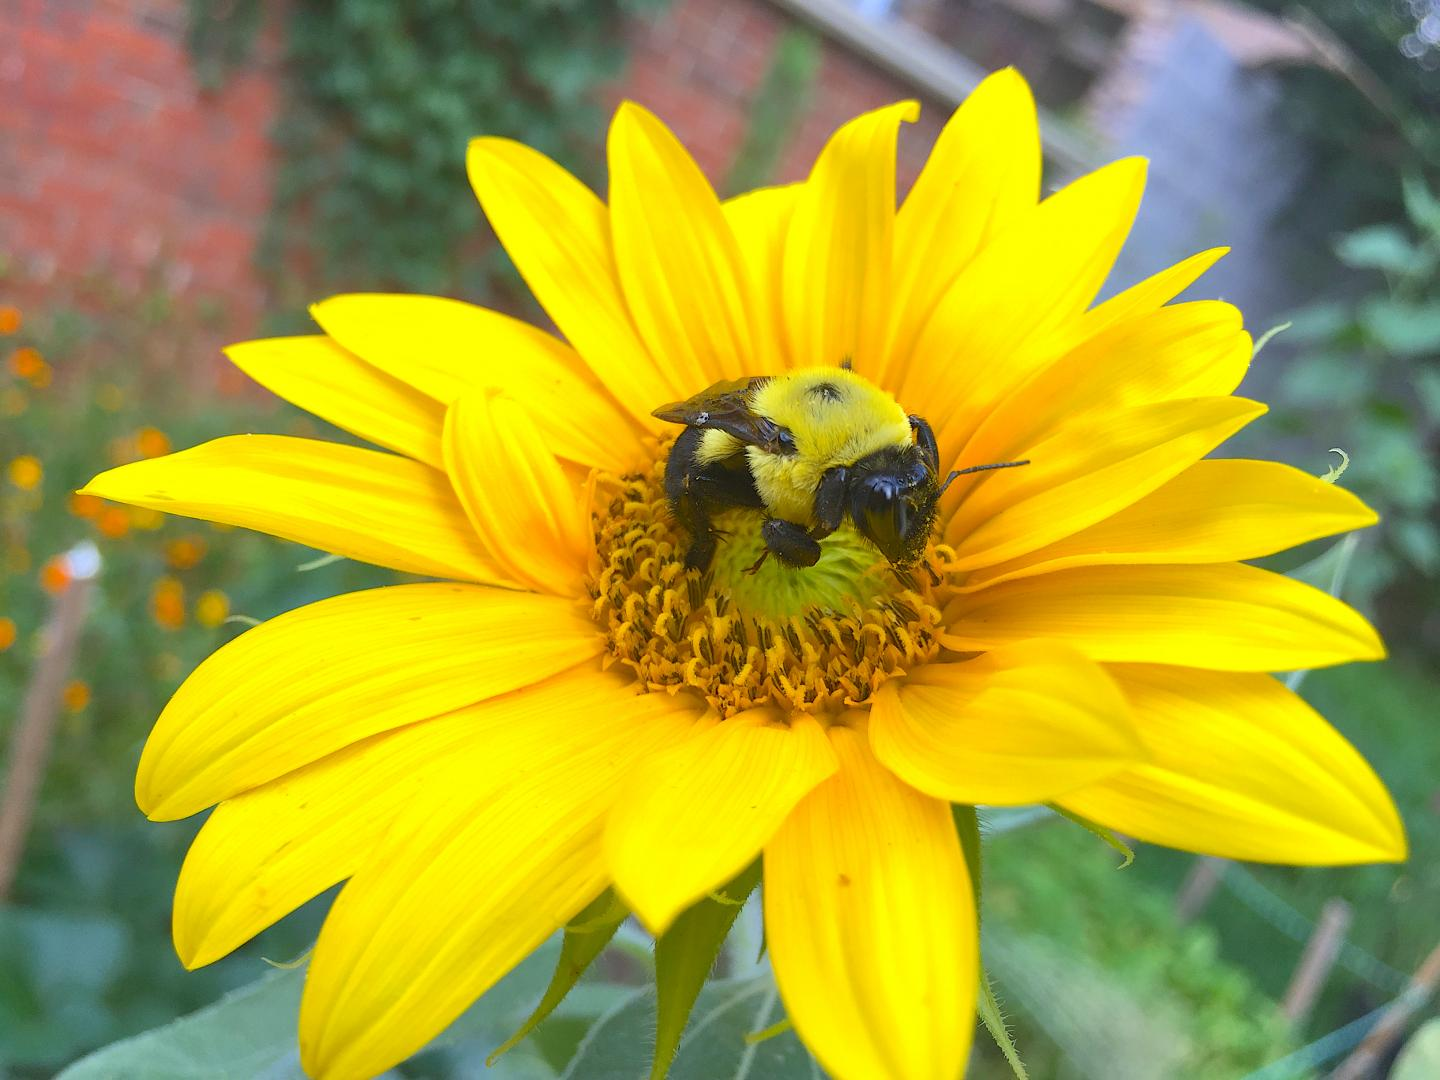 A Queen Bumble Bee on a Sunflower